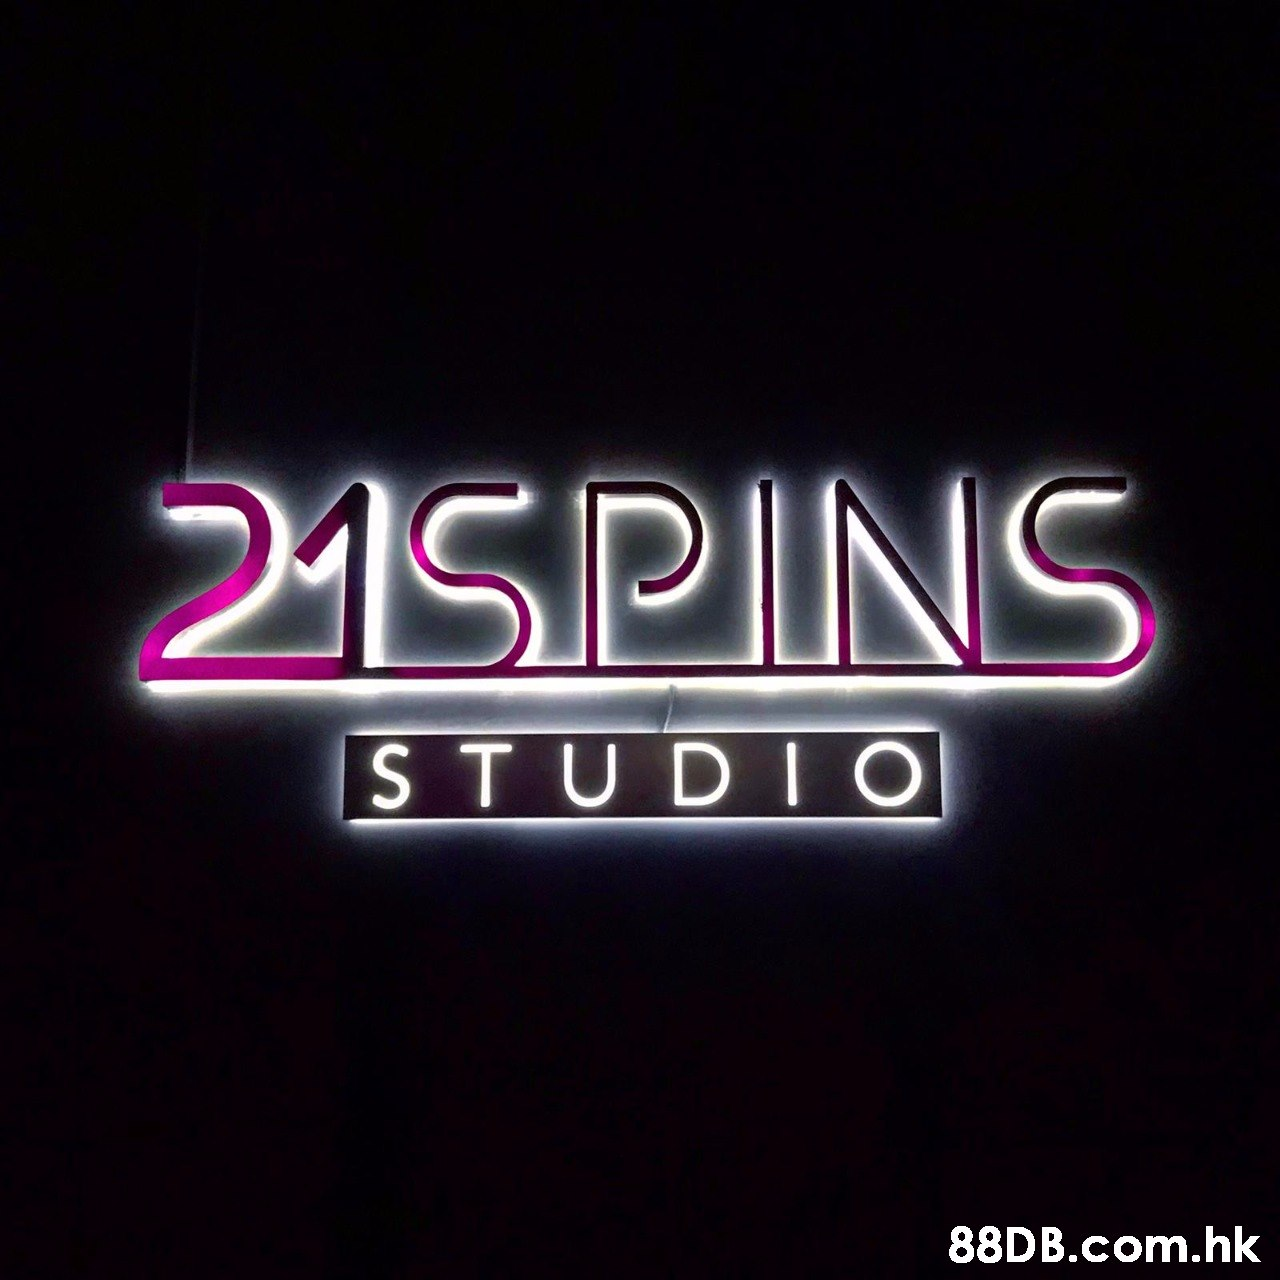 215PINS STUDI O .hk  Text,Font,Neon,Neon sign,Electronic signage